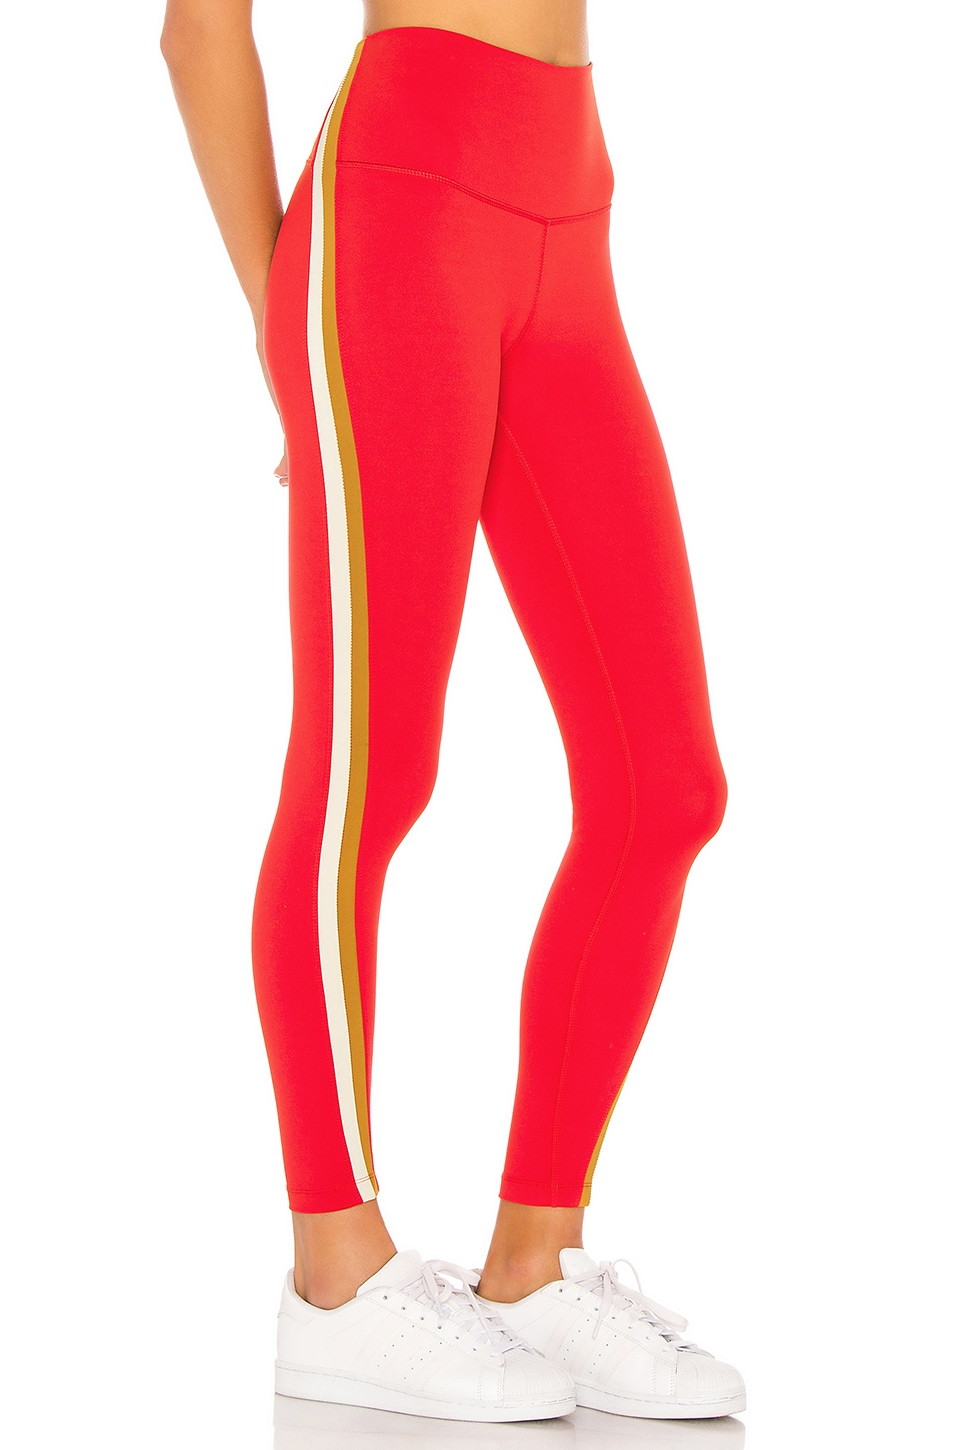 Splits59 Olivia High Waist 7/8 Tight in Red & Copper